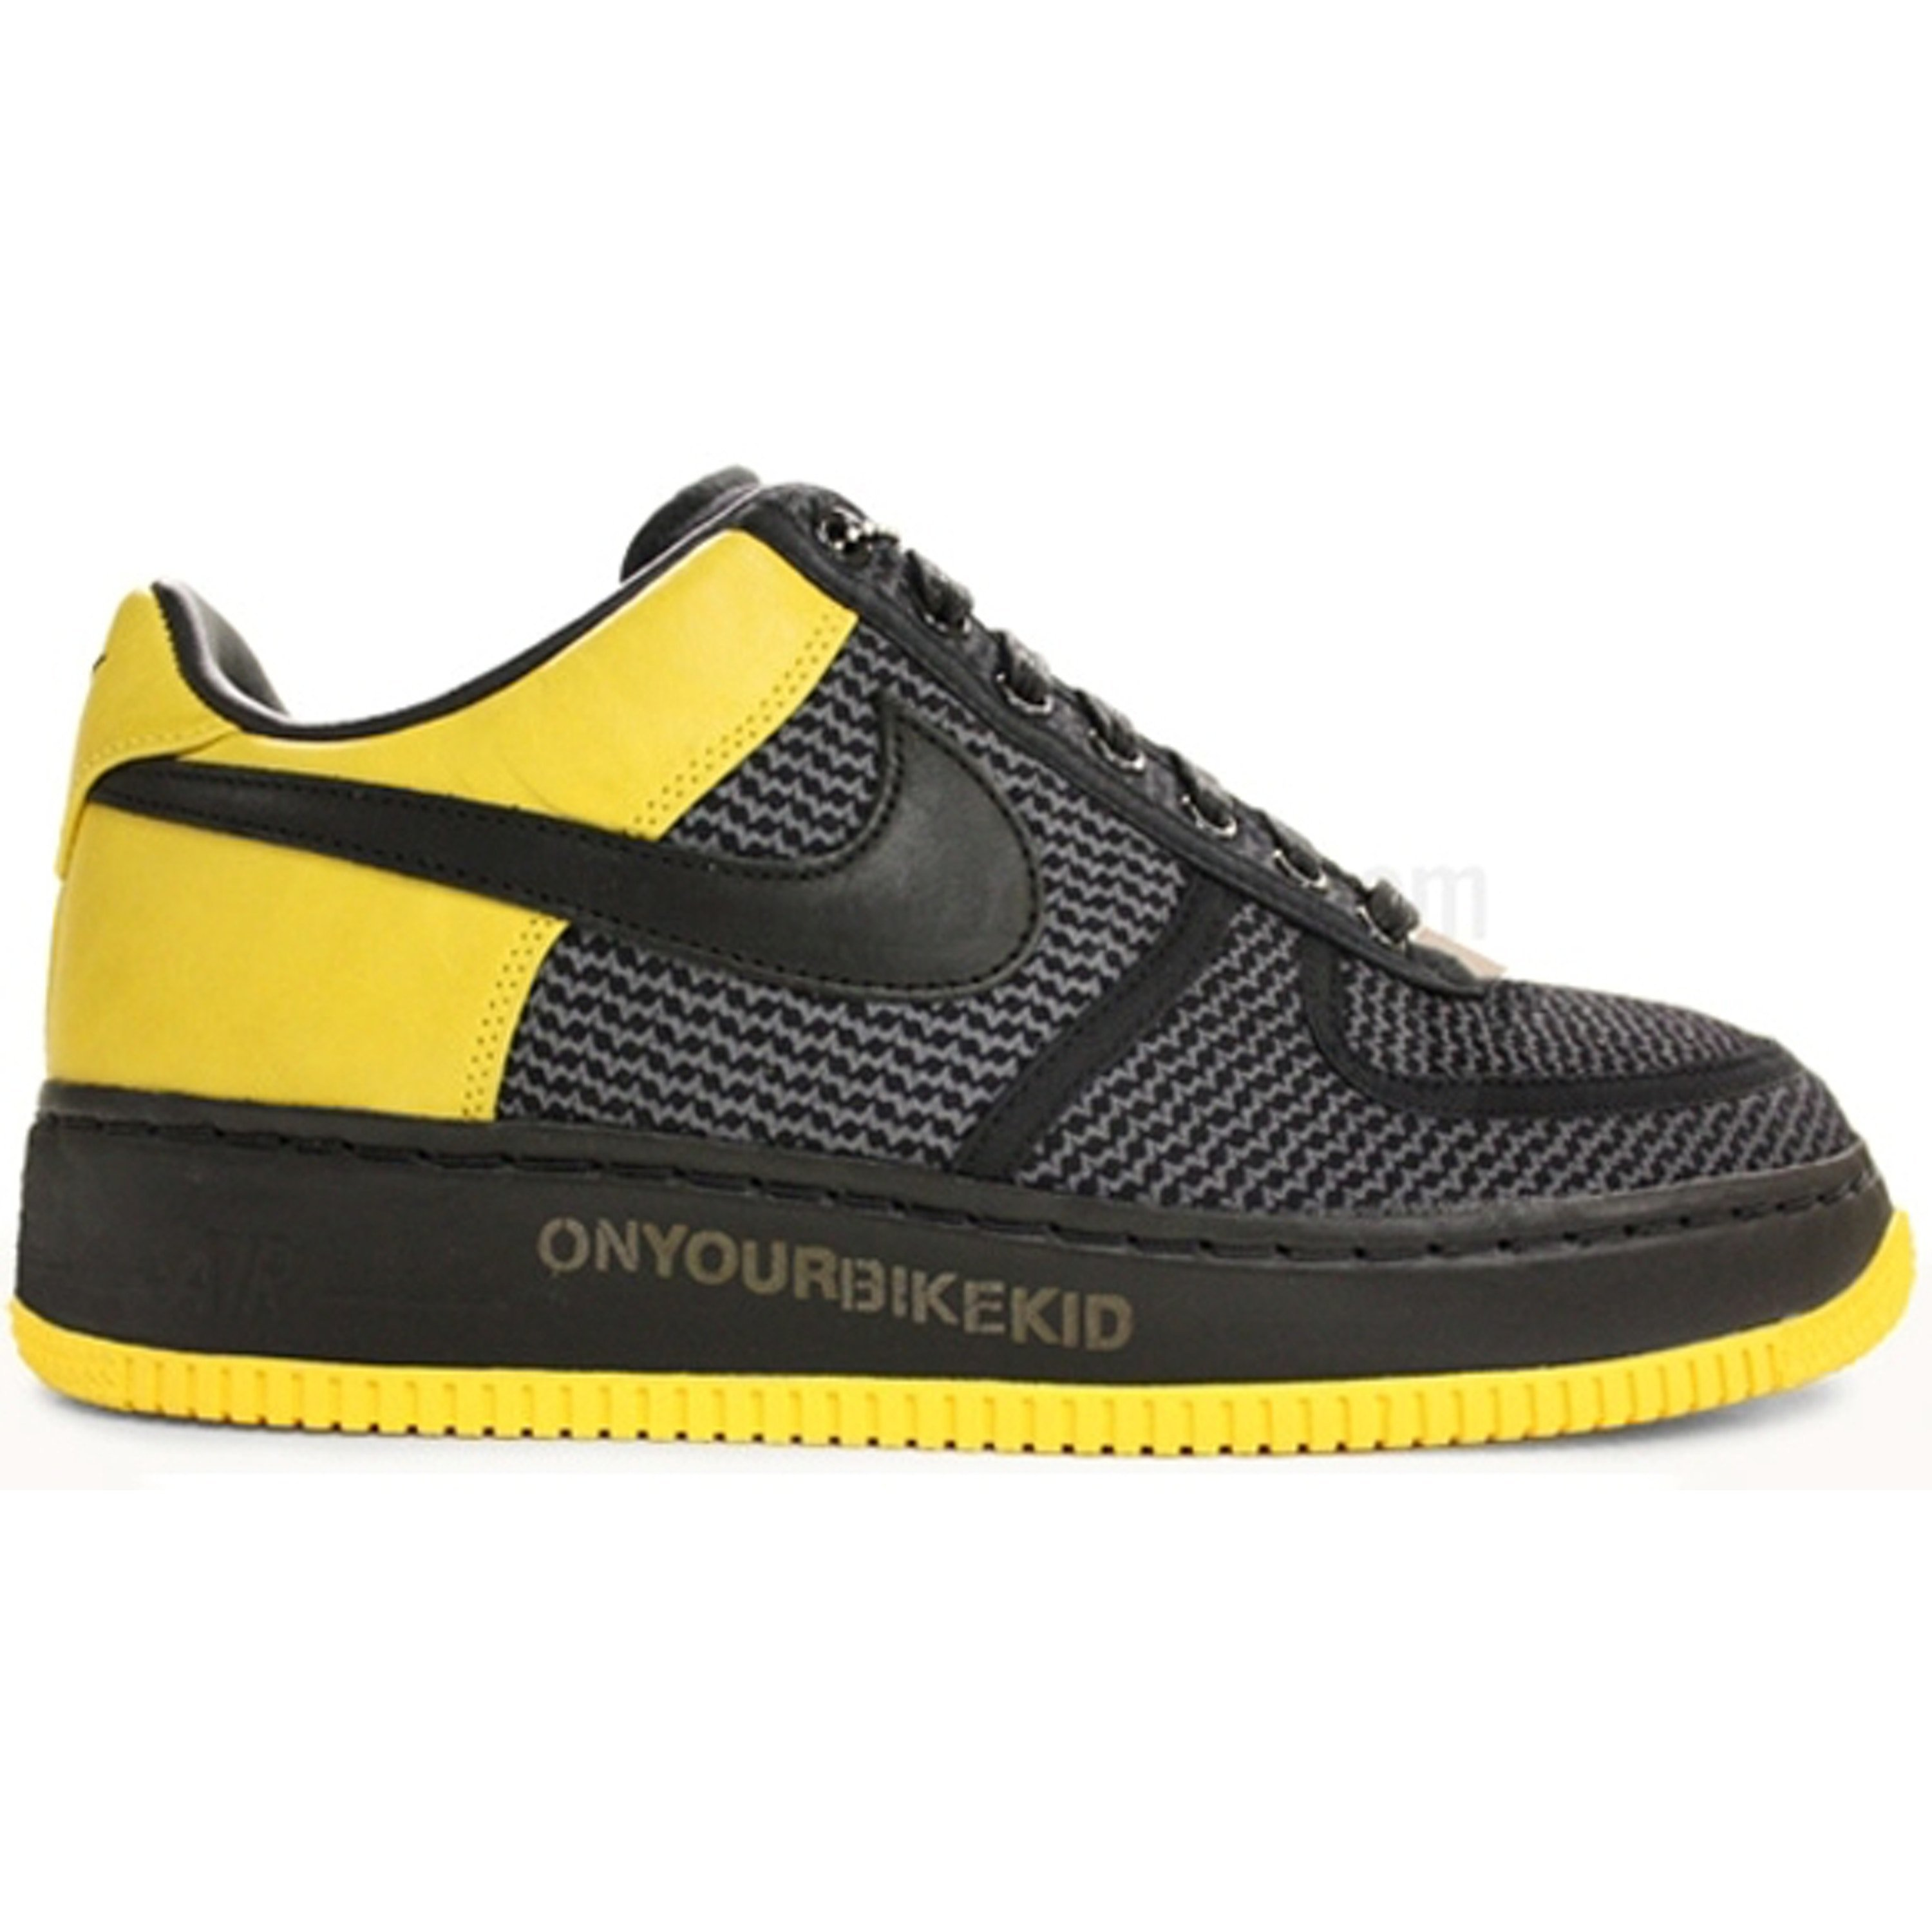 Nike Air Force 1 Low UNDFTD Livestrong (318985 700)